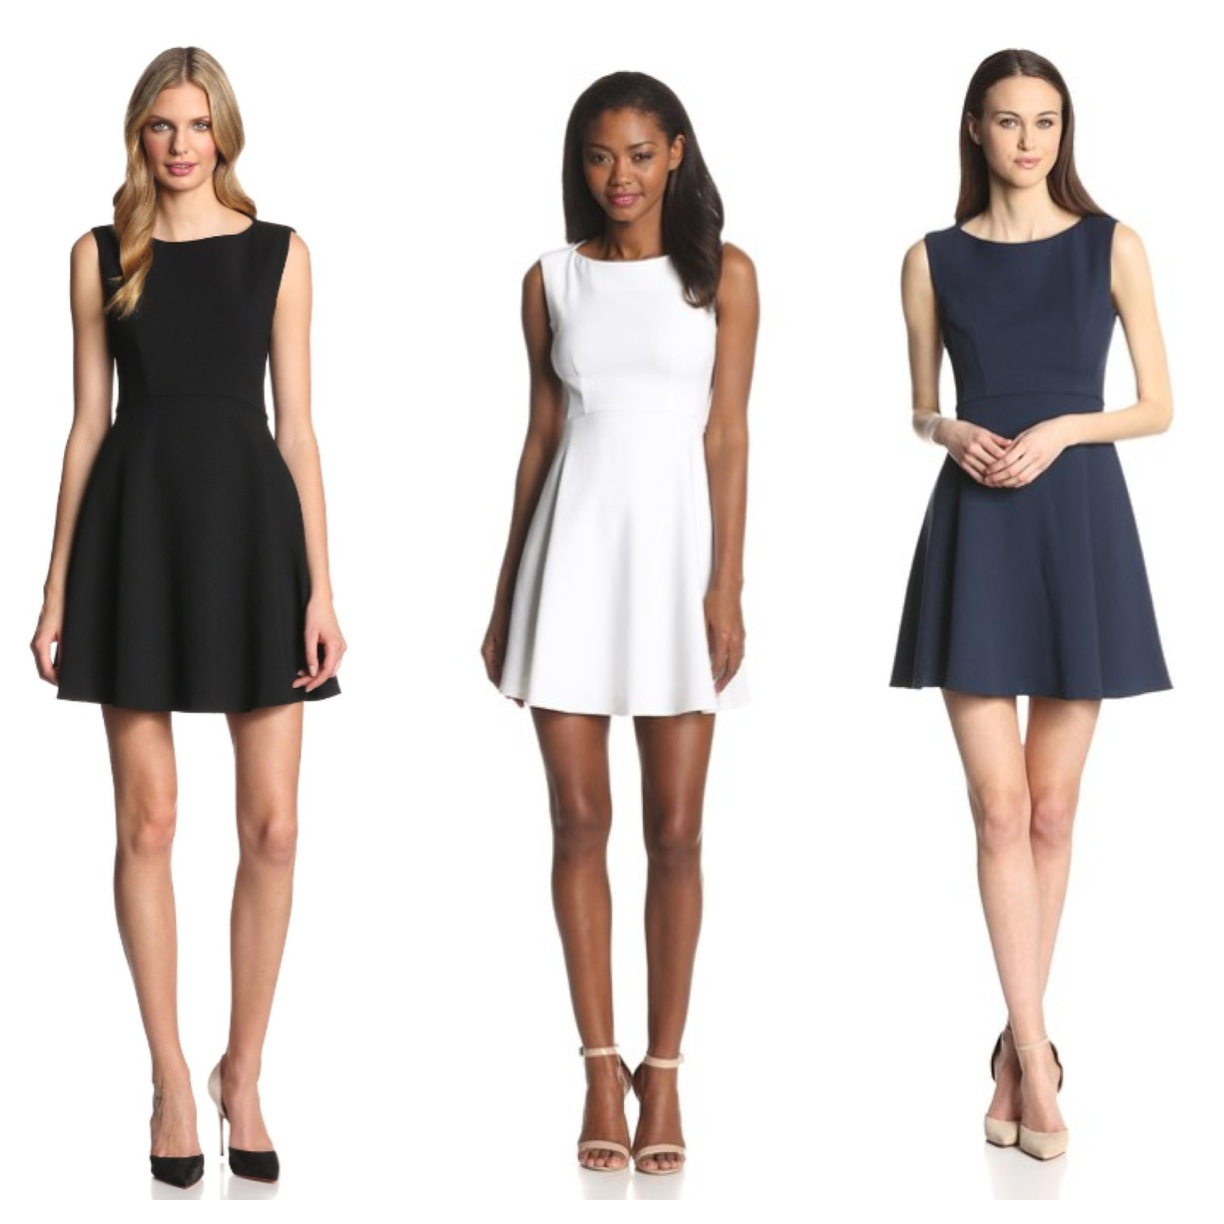 French Connection designer Dress in black, white, and blue